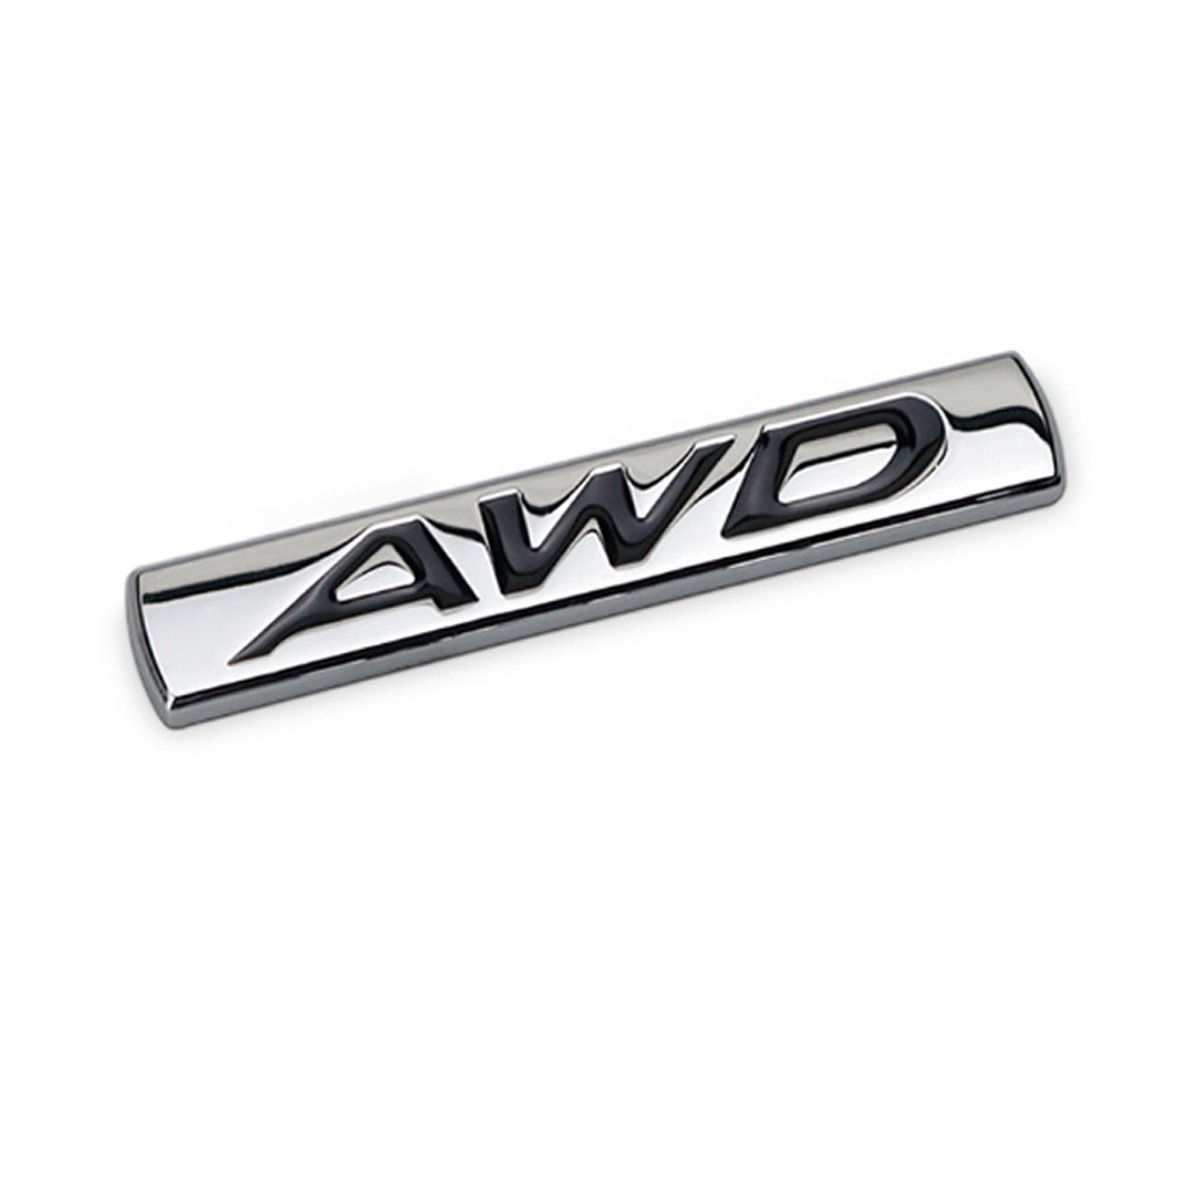 Dsycar 3d metal awd car side fender rear trunk emblem badge sticker decals for jeep dodge mercedes bmw mustang volvo chevrolet nissan audi vw ford honda